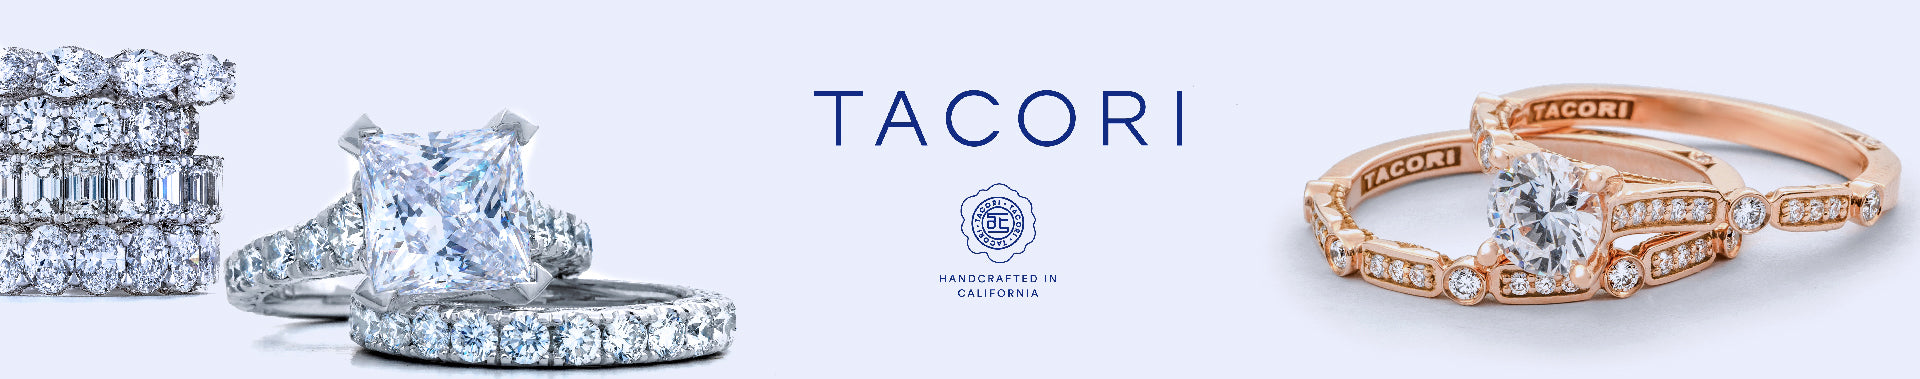 Tacori Collection at Capri Jewelers